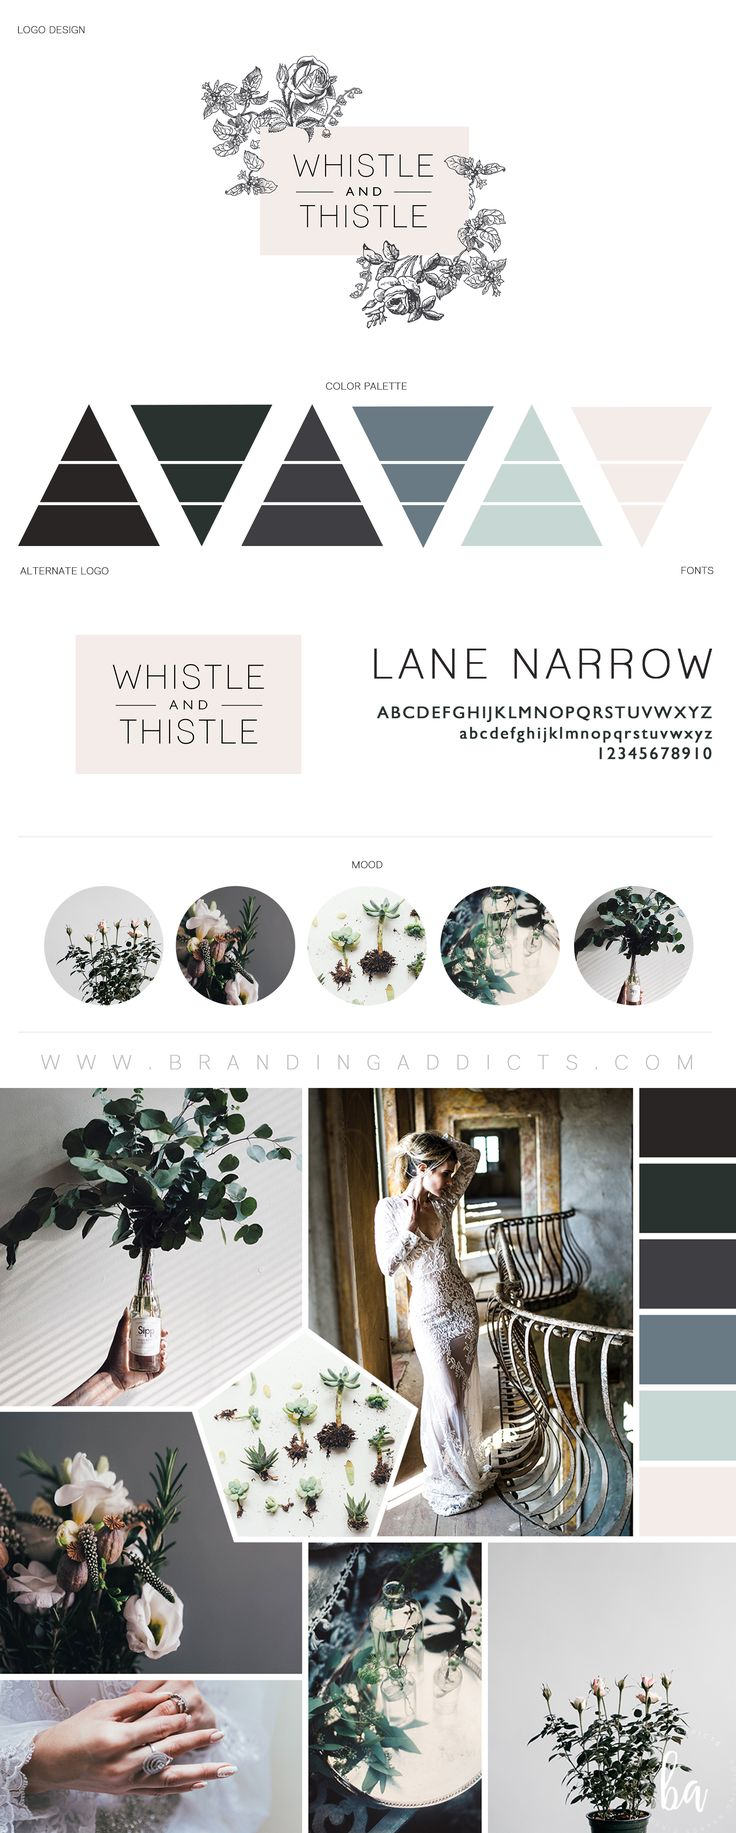 FOR SALE // Beautiful rustic and vintage branding designed for the edgy florist. This board is rich with unique wedding looks, romance, mystery, moodiness, eucalyptus, roses, and wild flowers. Emerald and blue hues. Dusty blue. Blush pink. Cozy, rustic, chic vibe. Professional Business Branding by Designer Laine Napoli. Web Design, Logo, Mood Board, Brand Boards, and more.